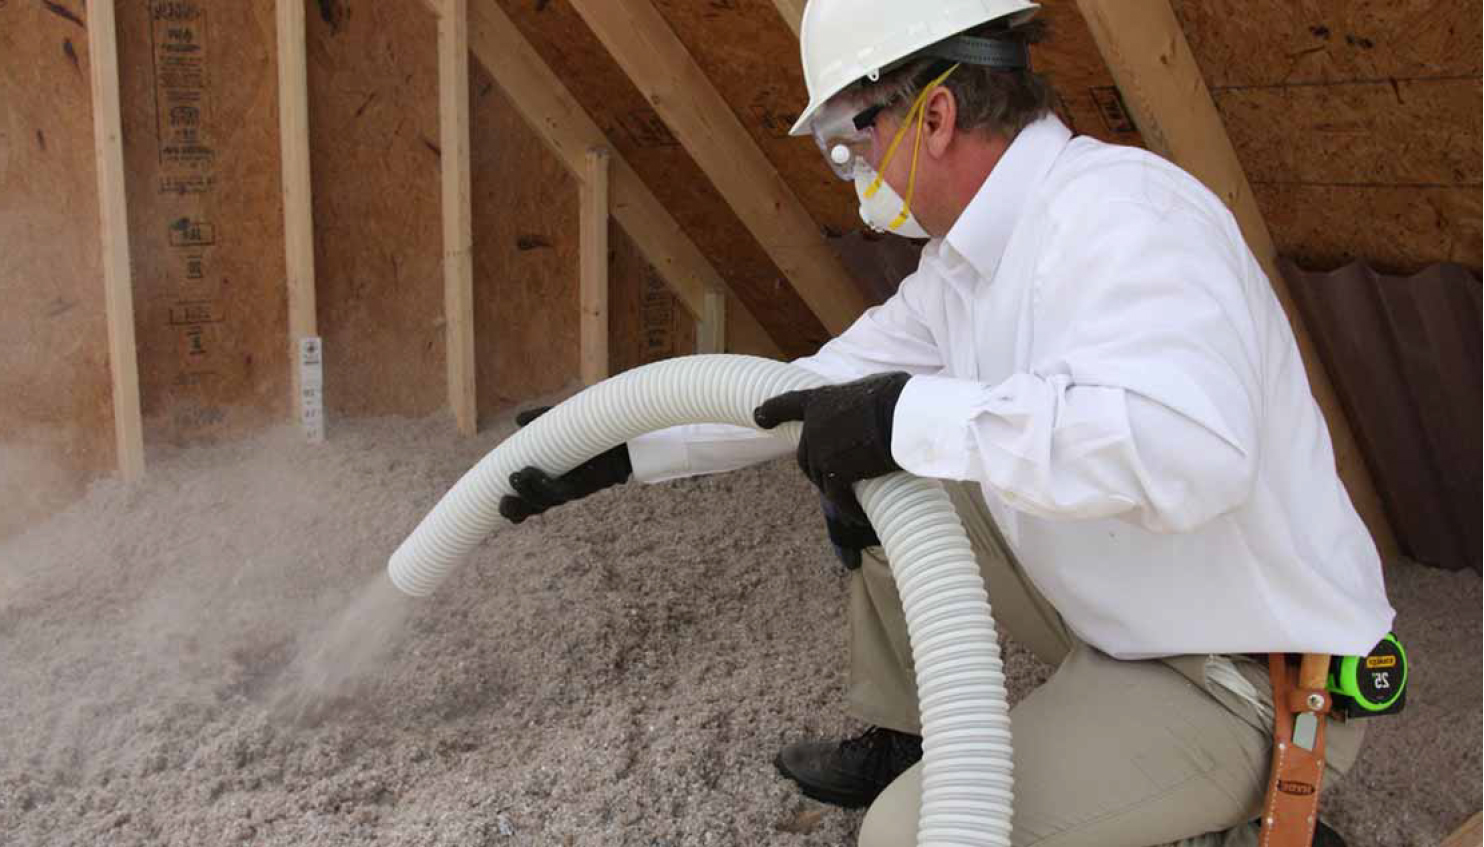 Pest Control Insulation and Banker Insulation Bring New Opportunity for Arizona PCOs